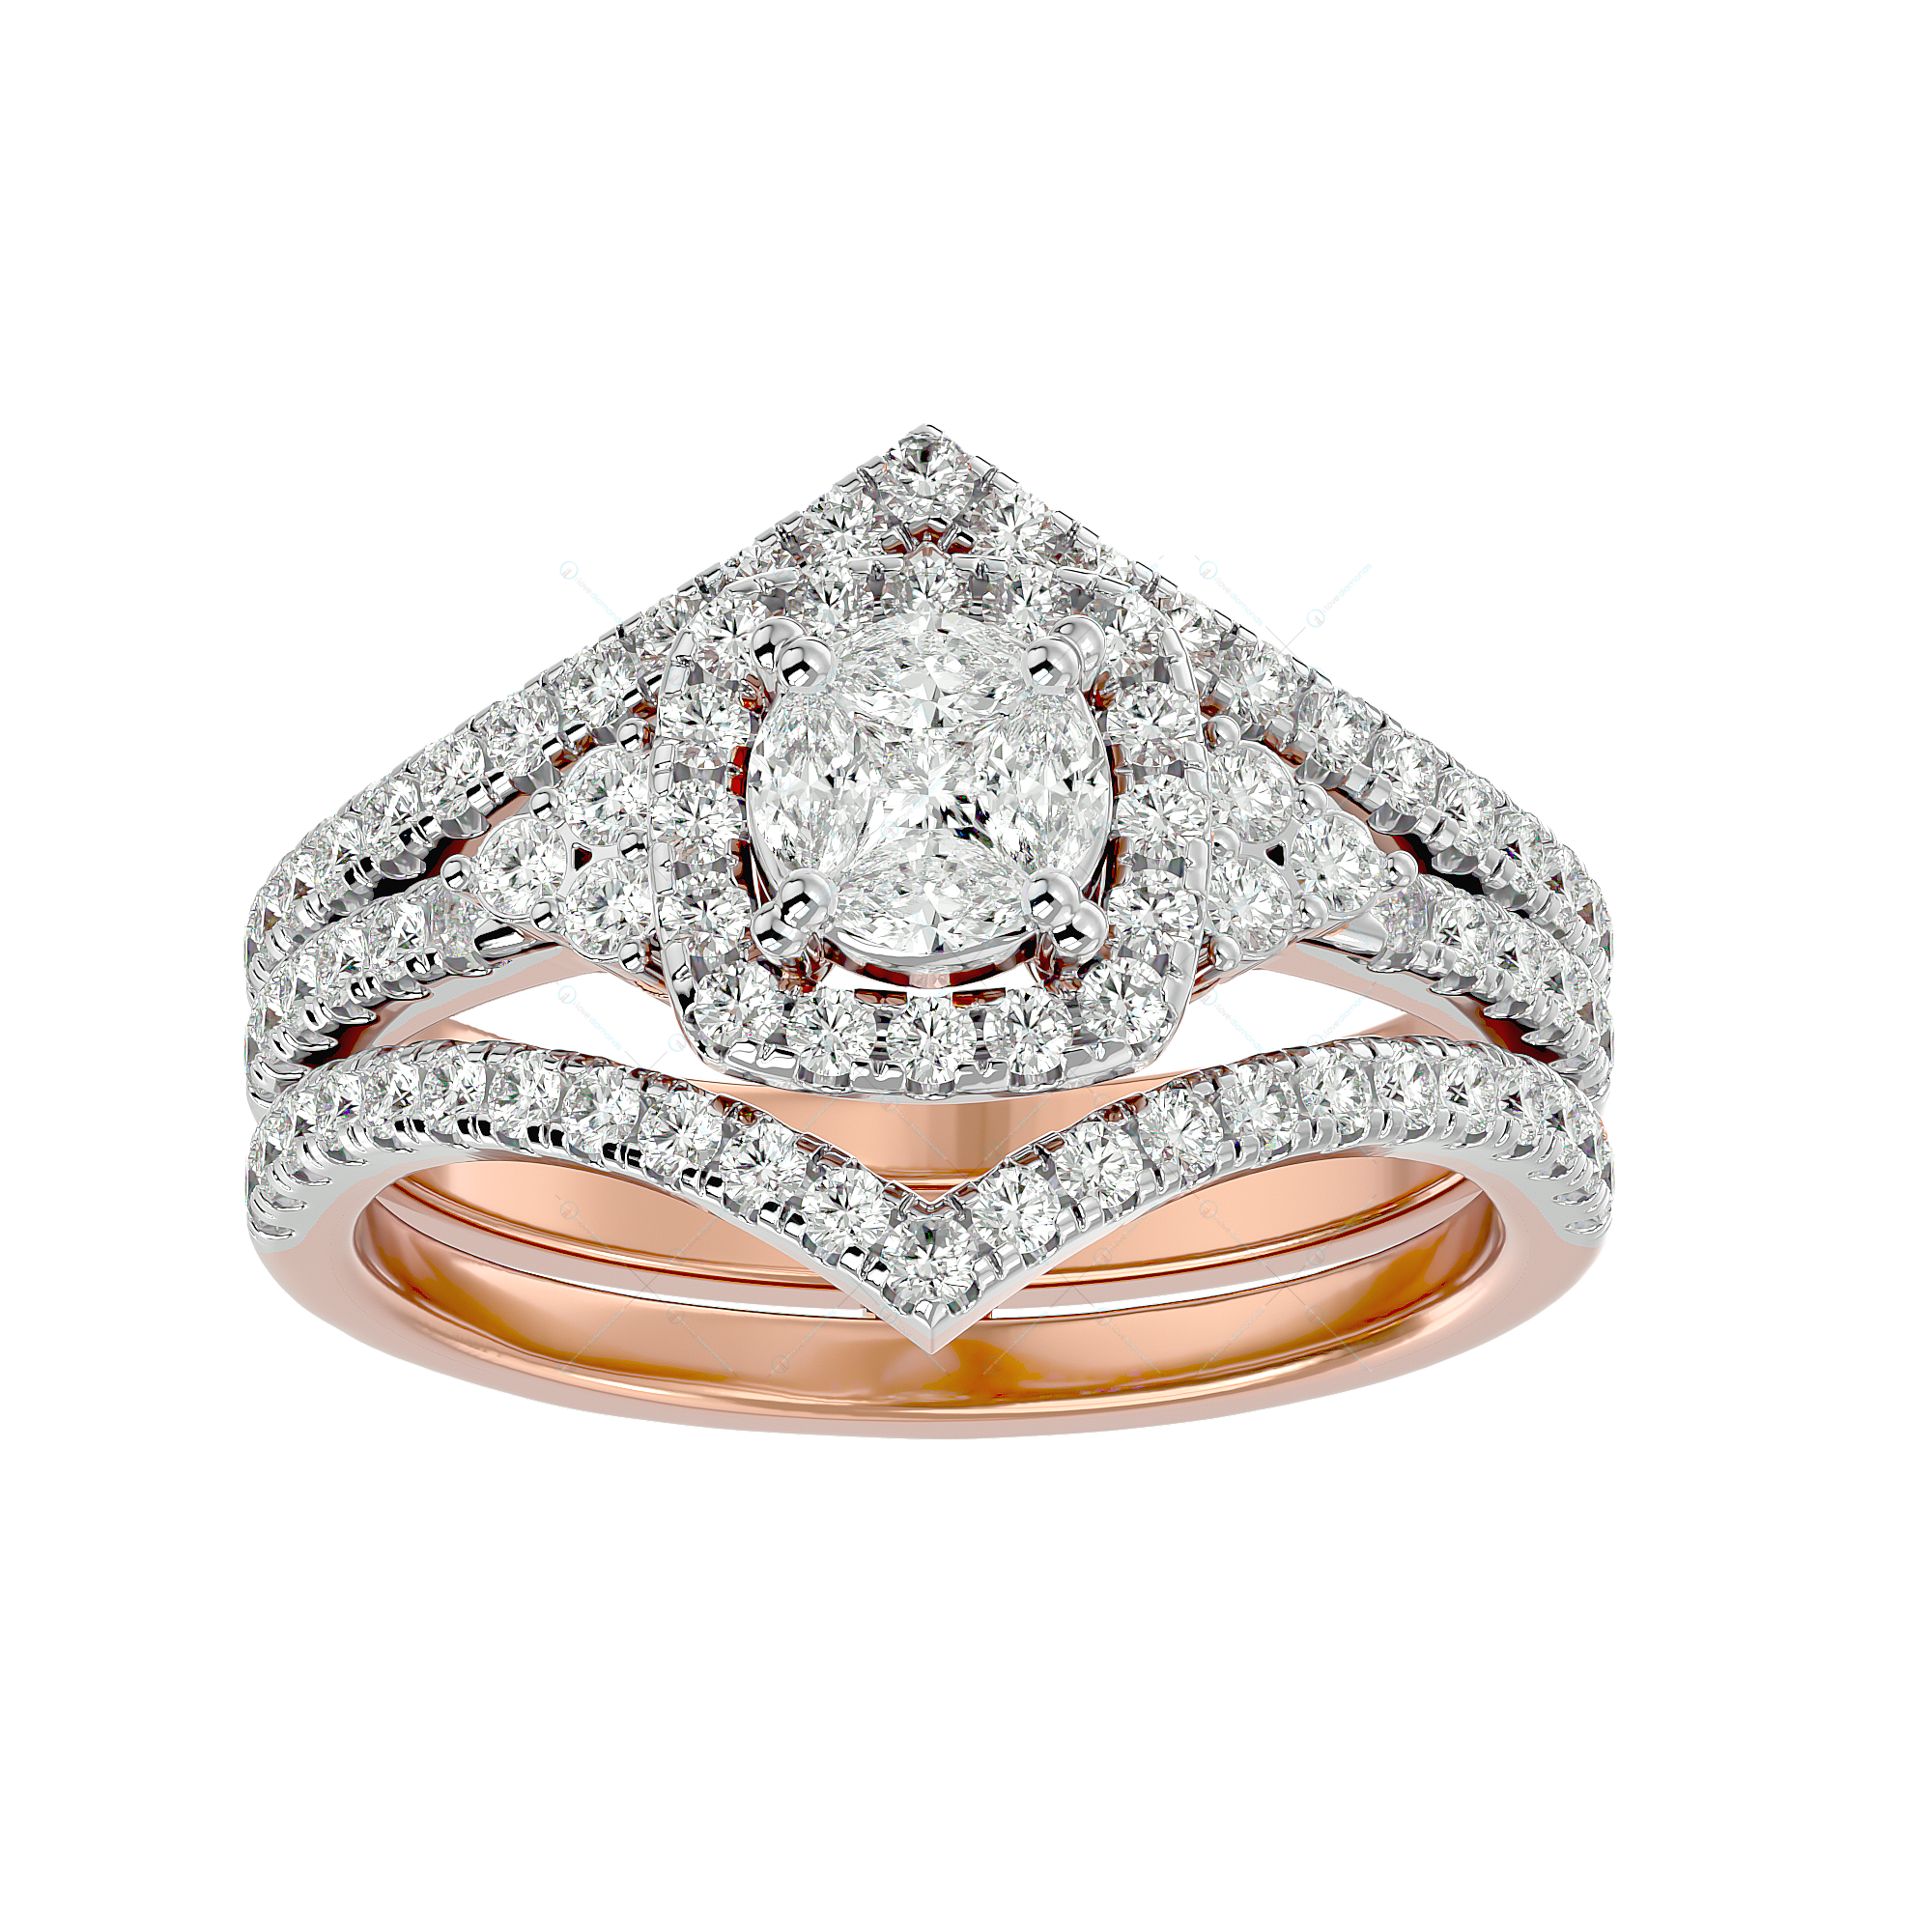 Majestic Grandeur Solitaire Illusion Diamond Ring in Pink Gold for Women v2